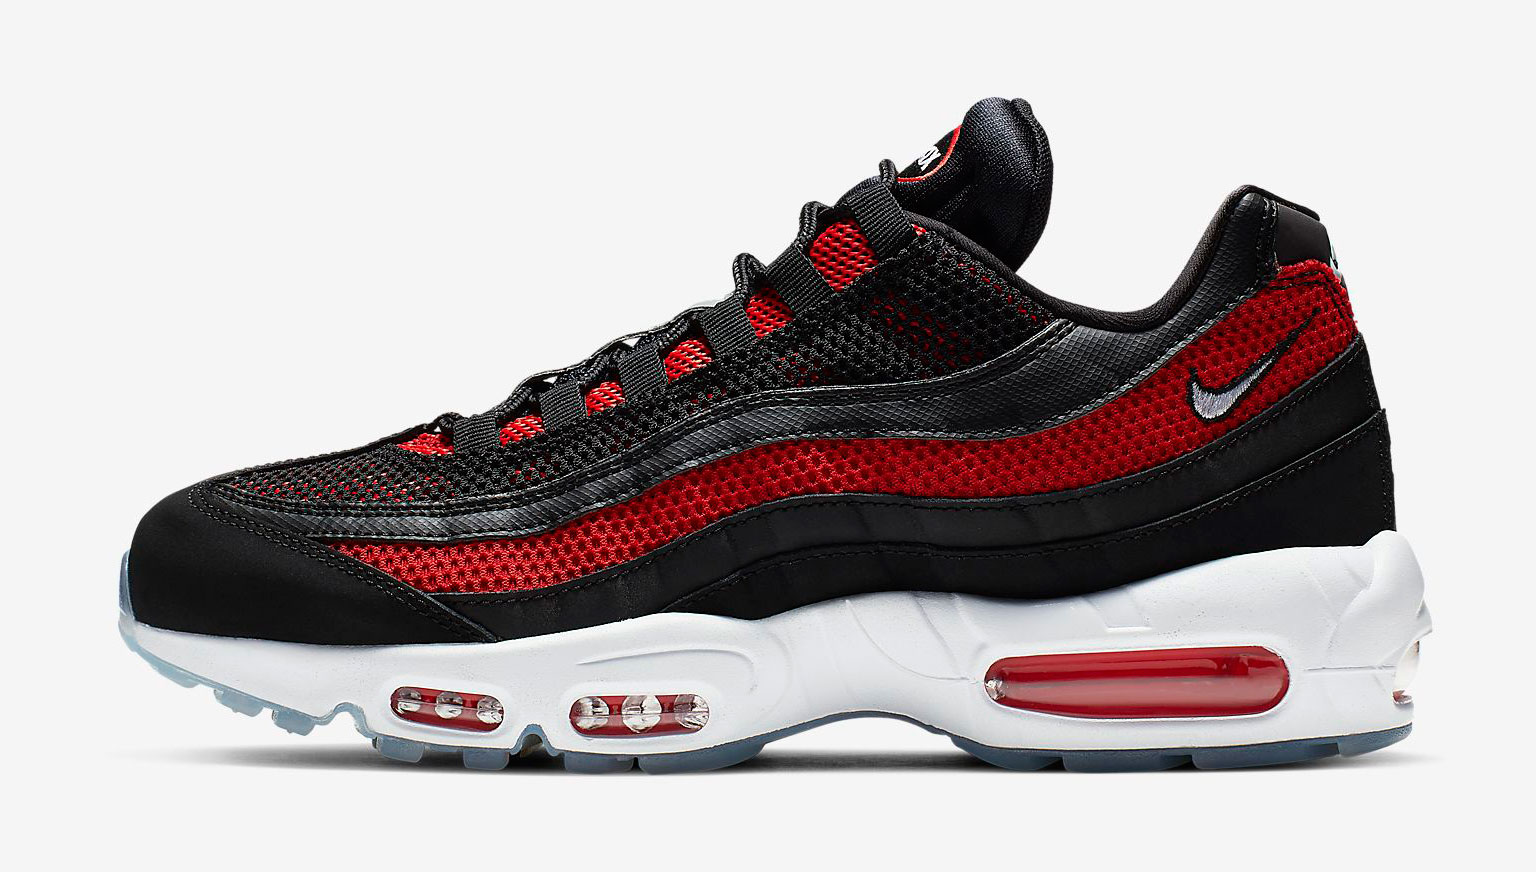 nike-air-max-95-black-red-white-bred-release-date-where-to-buy